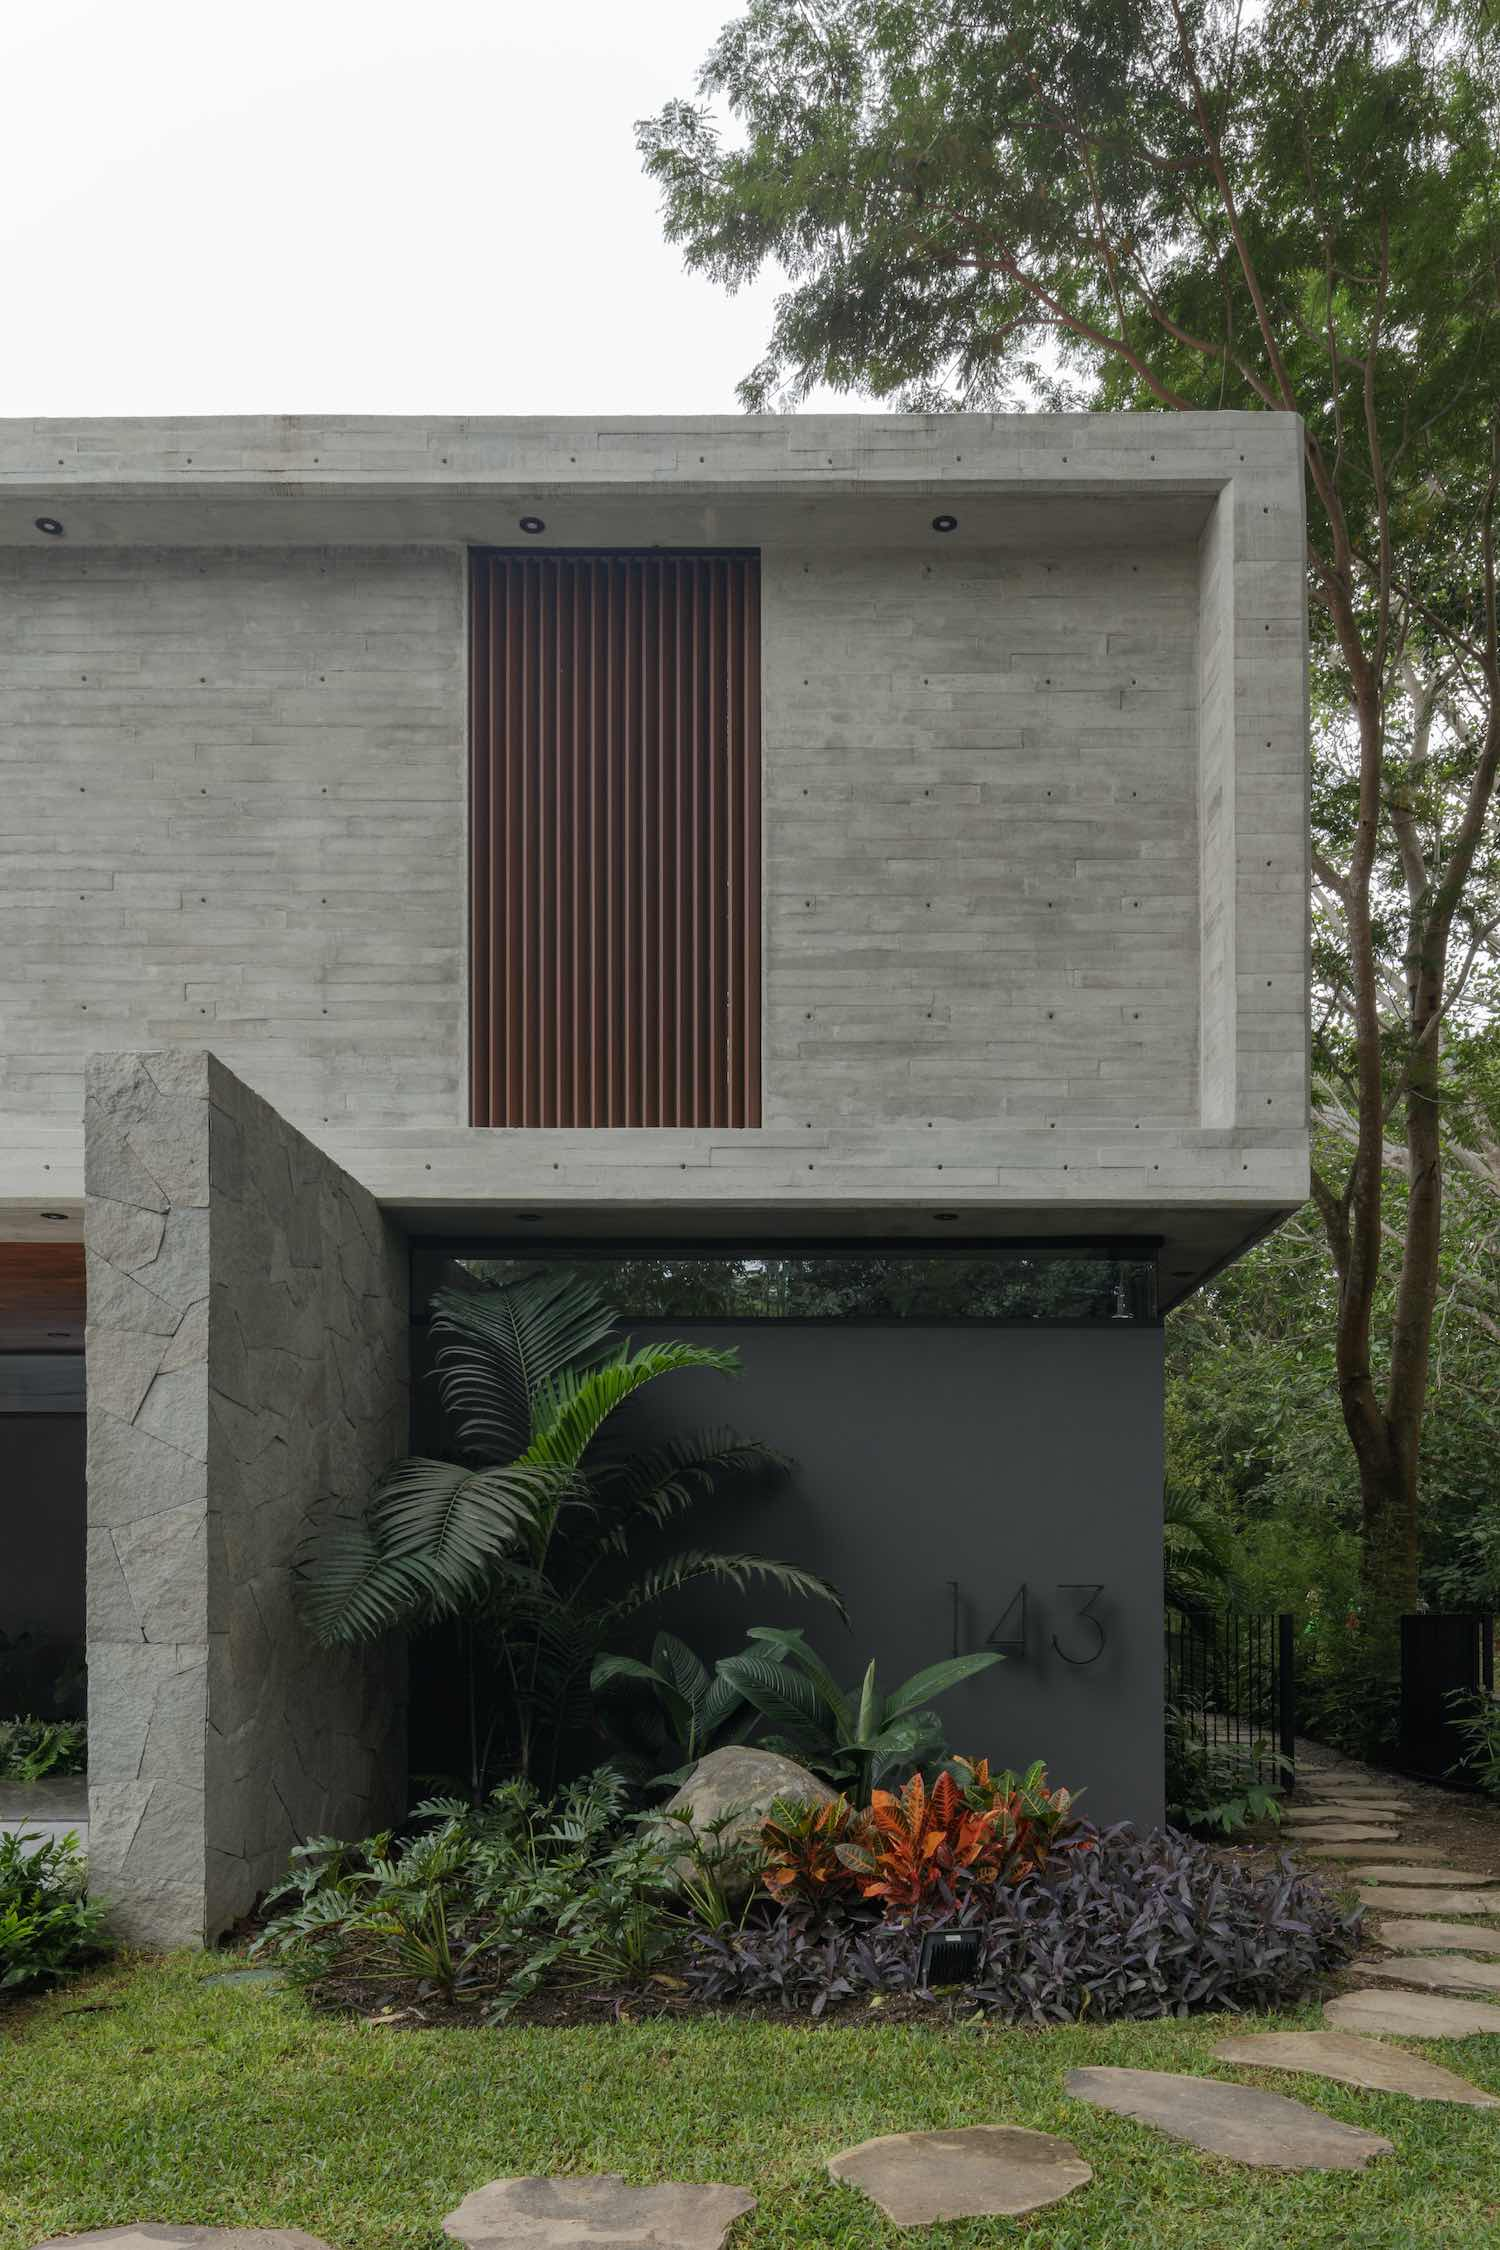 house surrounded with tropical vegetation